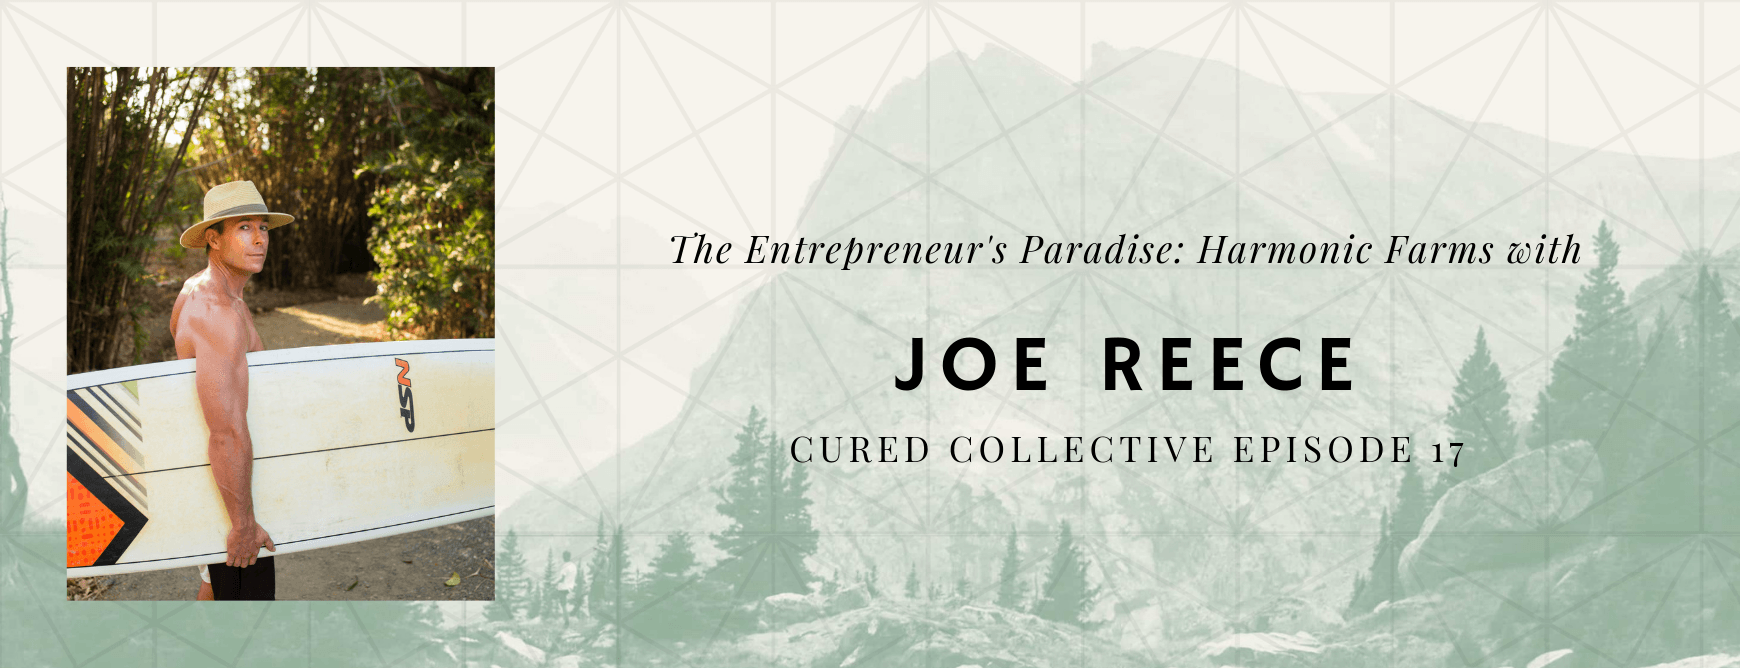 Cured Collective Podcast With Joe Reece